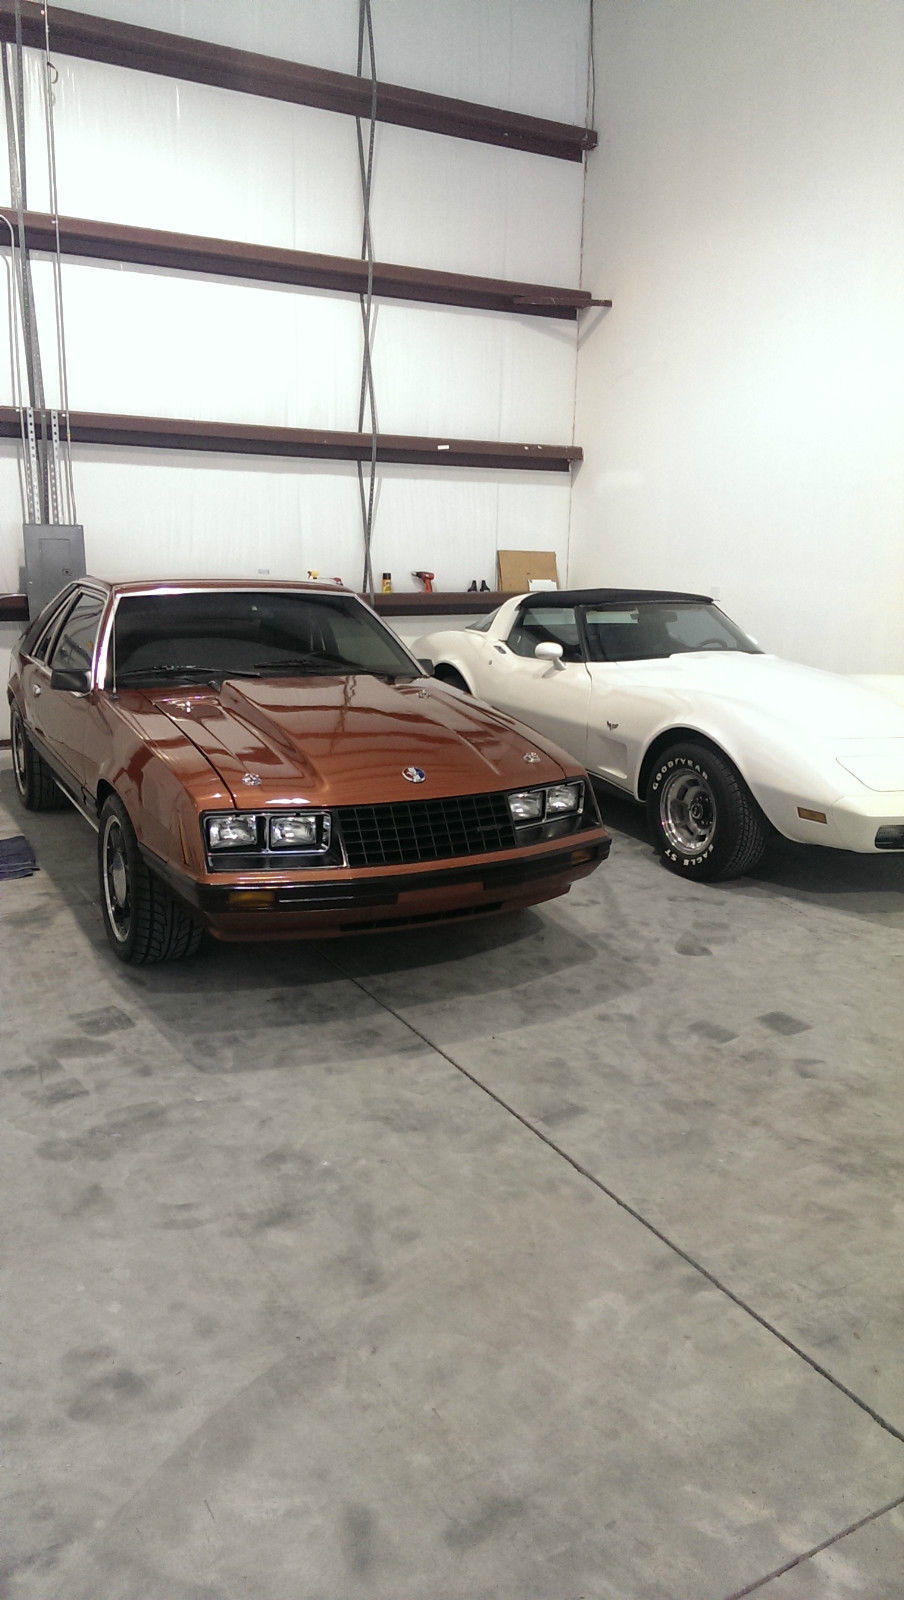 1979 Mustang 5 0 For Sale In Deland Florida United States